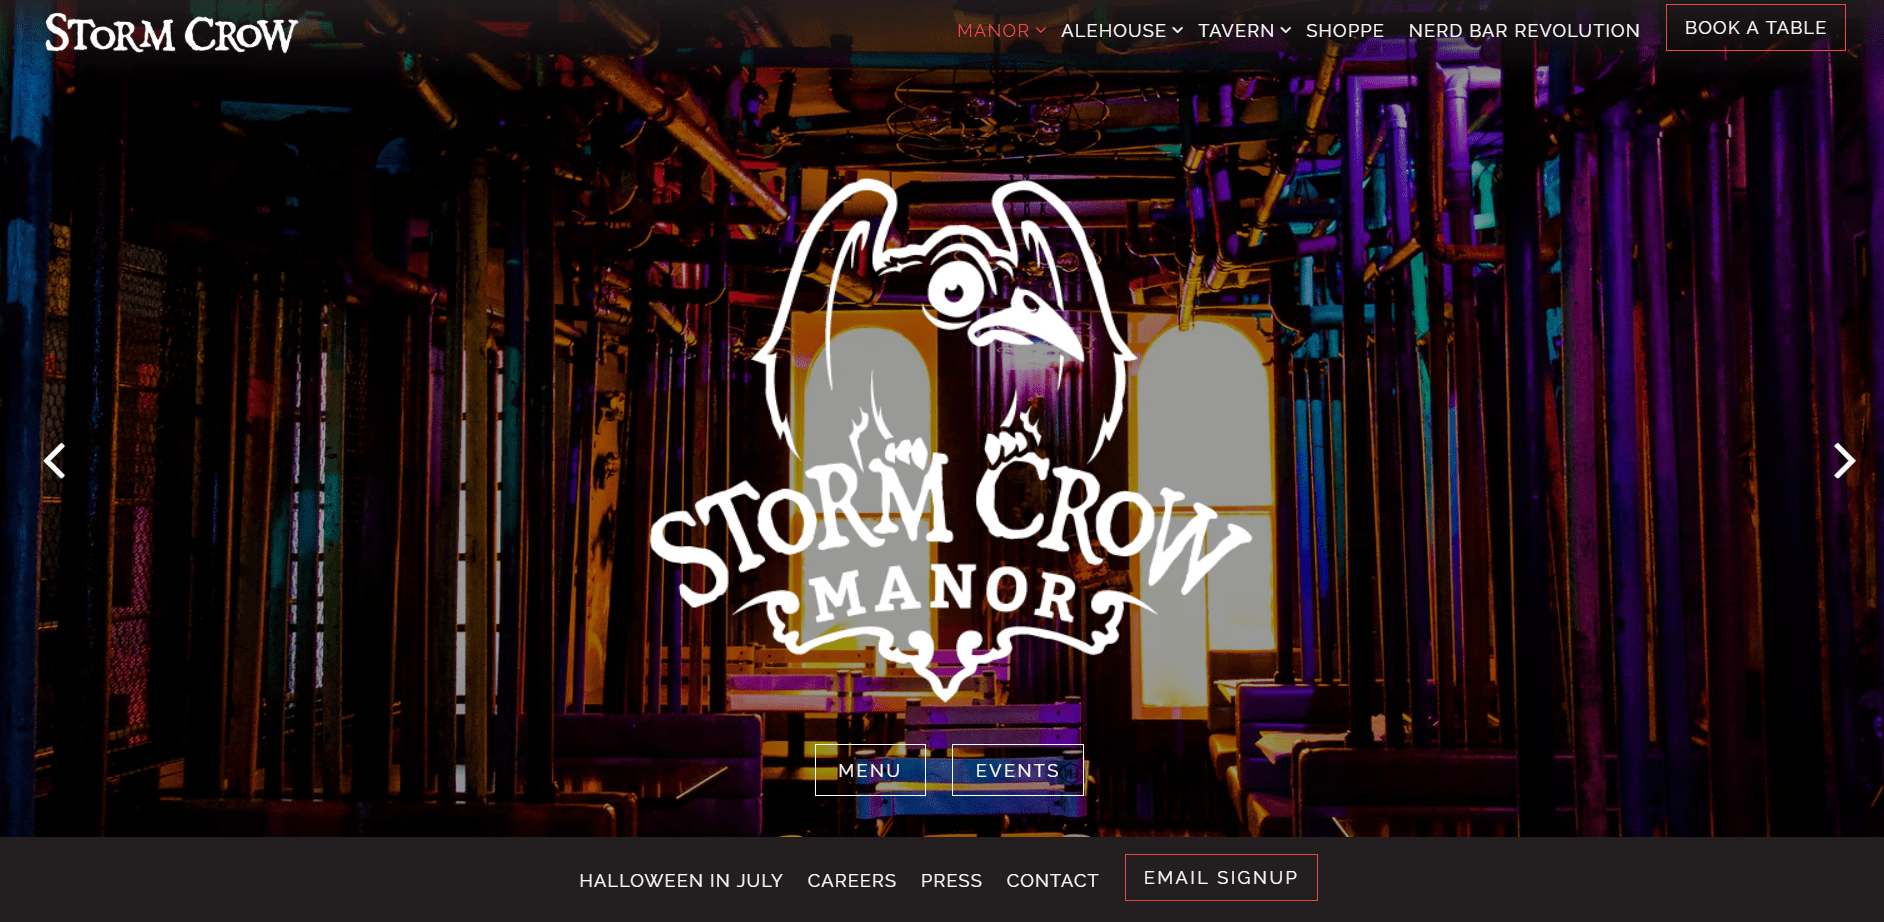 The Stormcrown Manner a besoin d'un site Web pour donner une idée de son décor